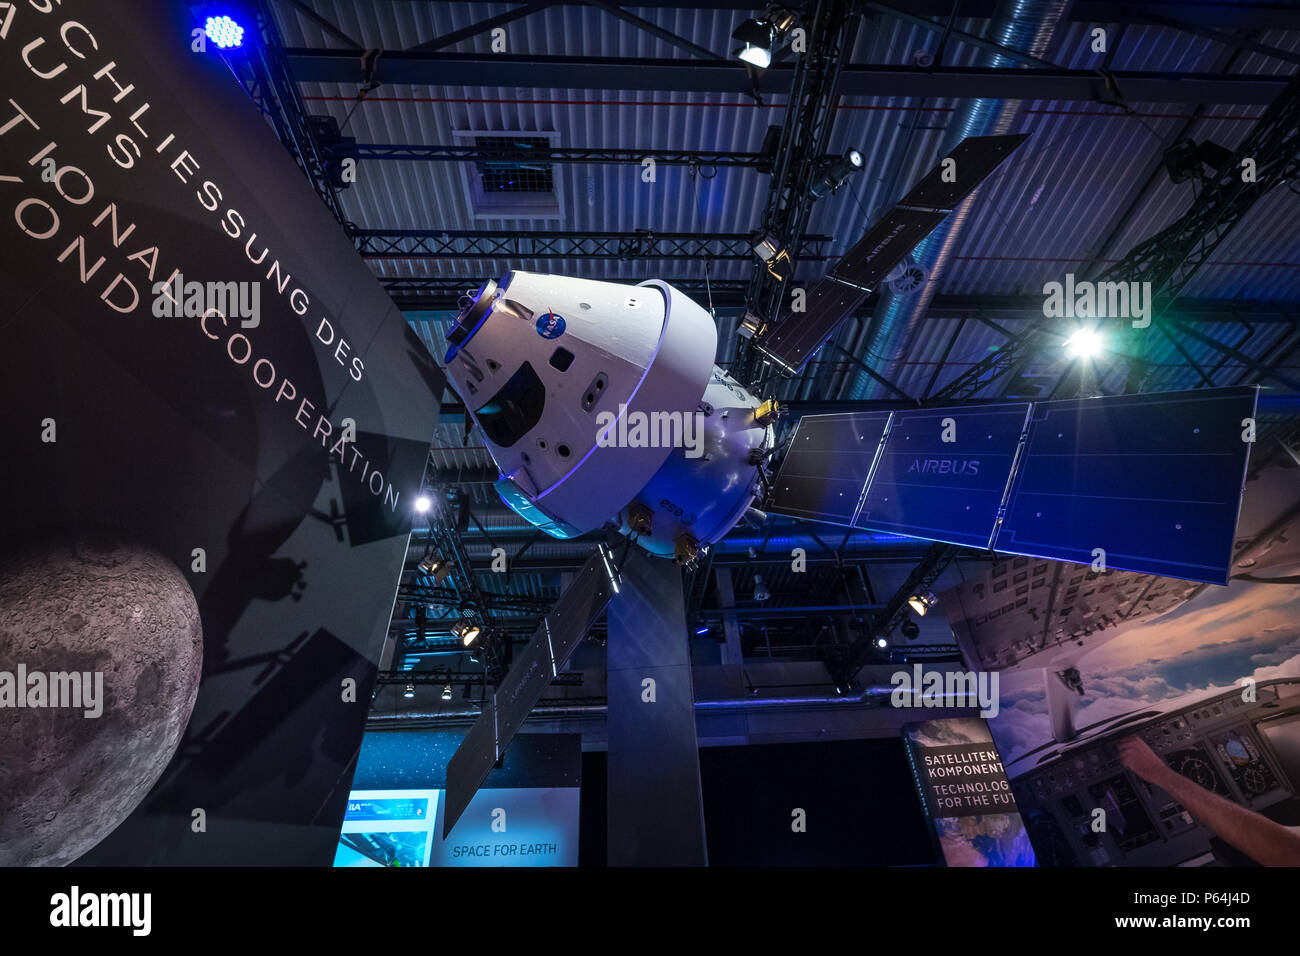 Space Pavilion. Mockup of the European Service Module (ESM), one of the component of the Orion spacecraft. Exhibition ILA Berlin Air Show 2018 - Stock Image